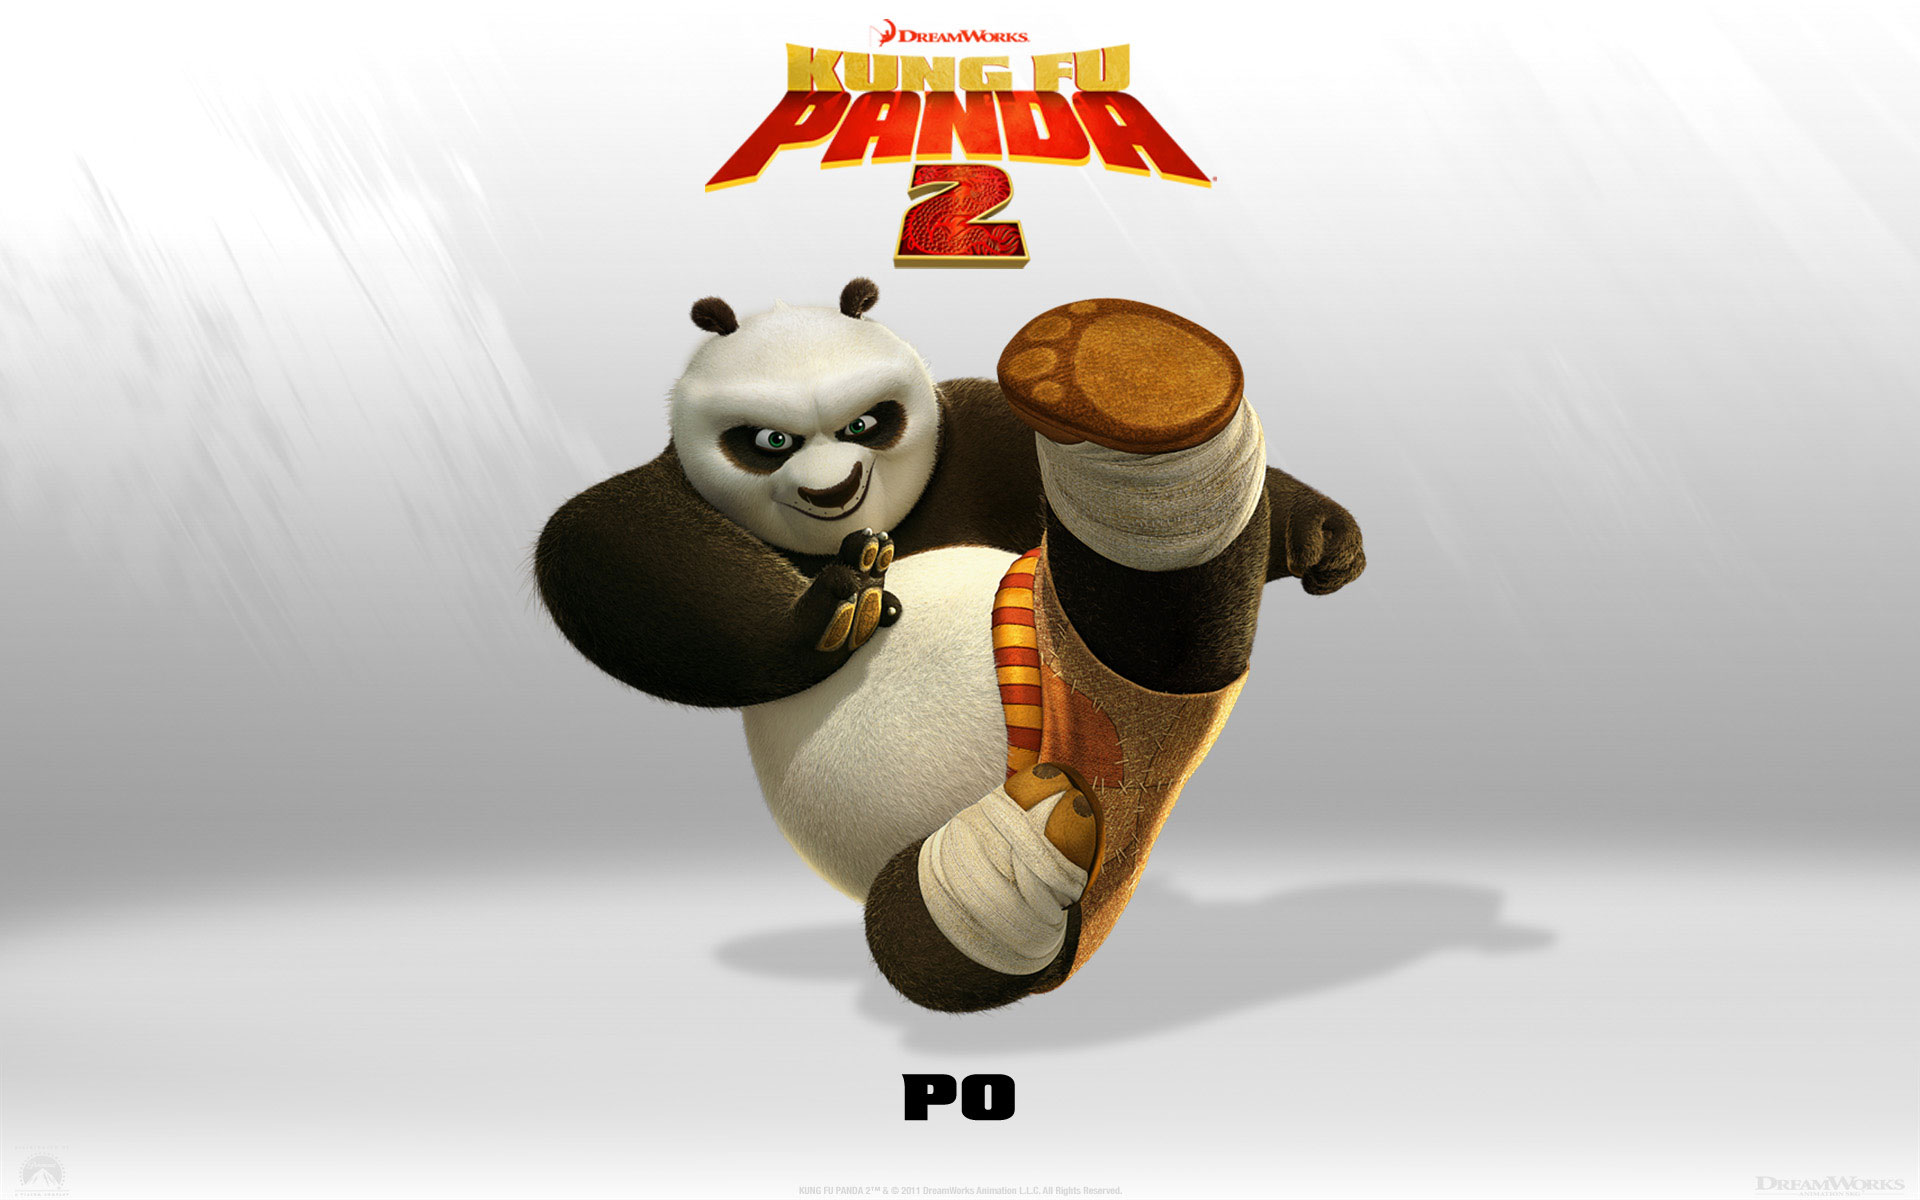 kung-fu-panda-2-po-wallpaper-7581-7874-hd-wallpapers